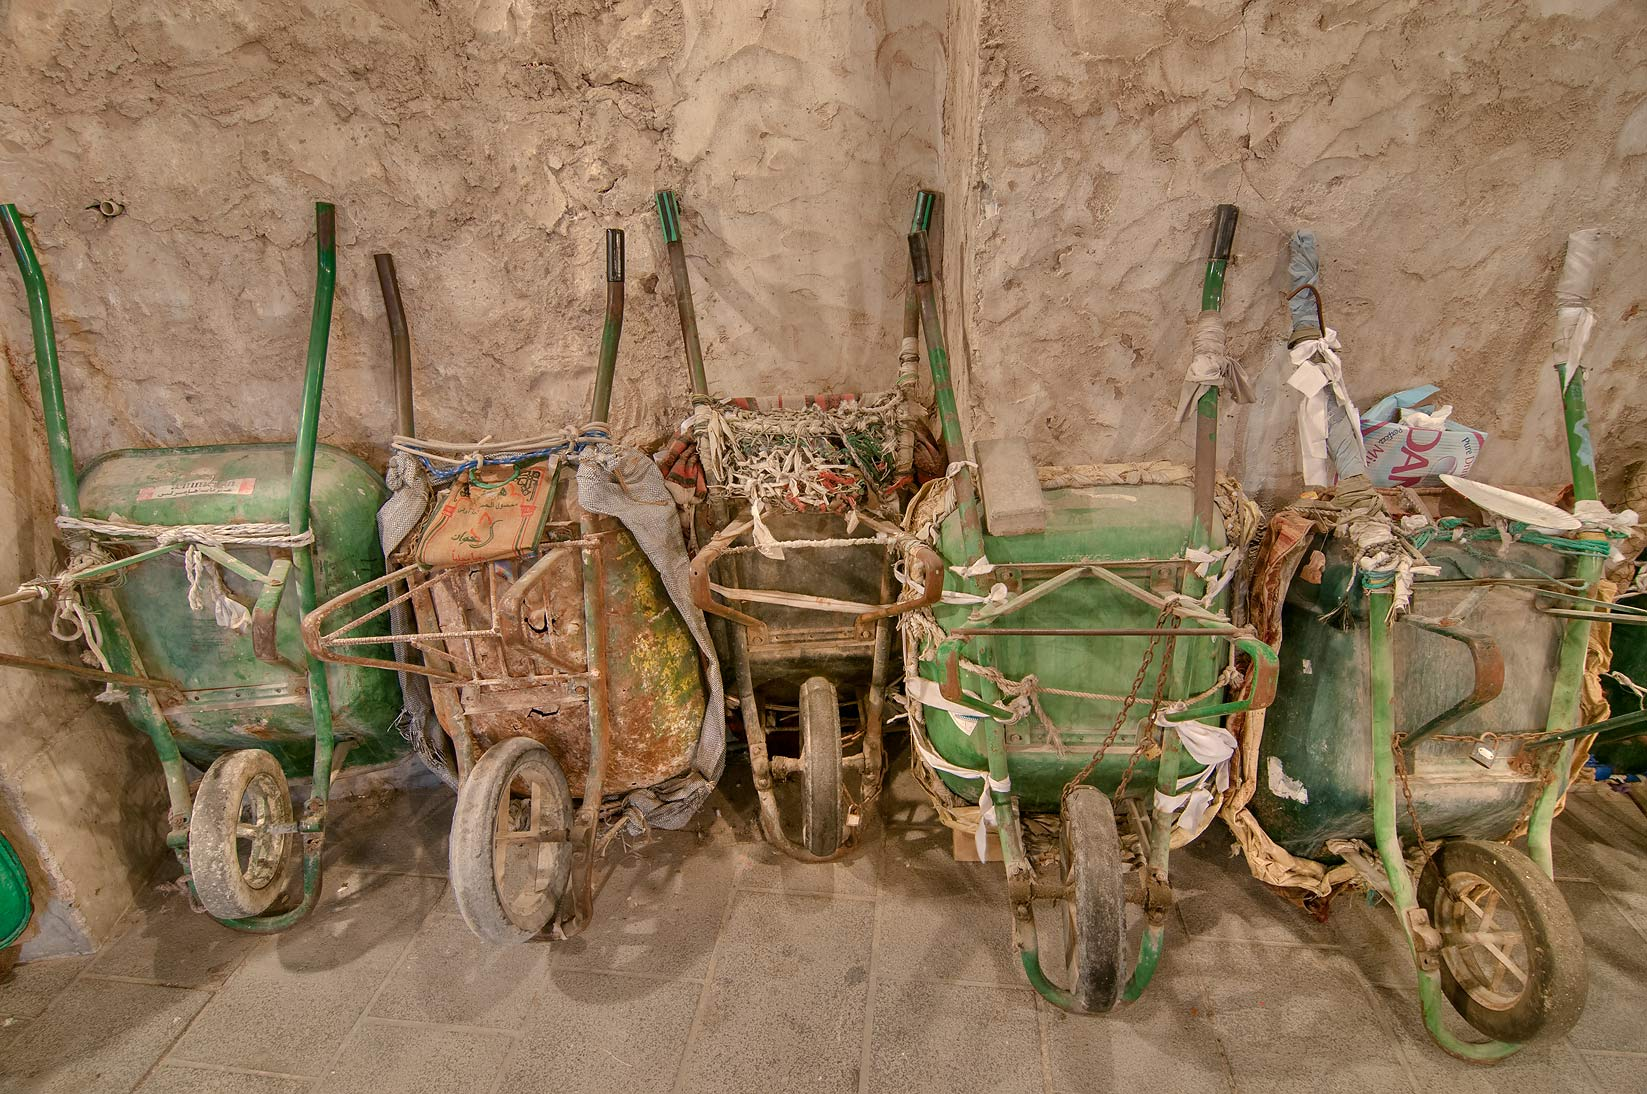 Wheelbarrows in Souq Waqif (Old Market). Doha, Qatar